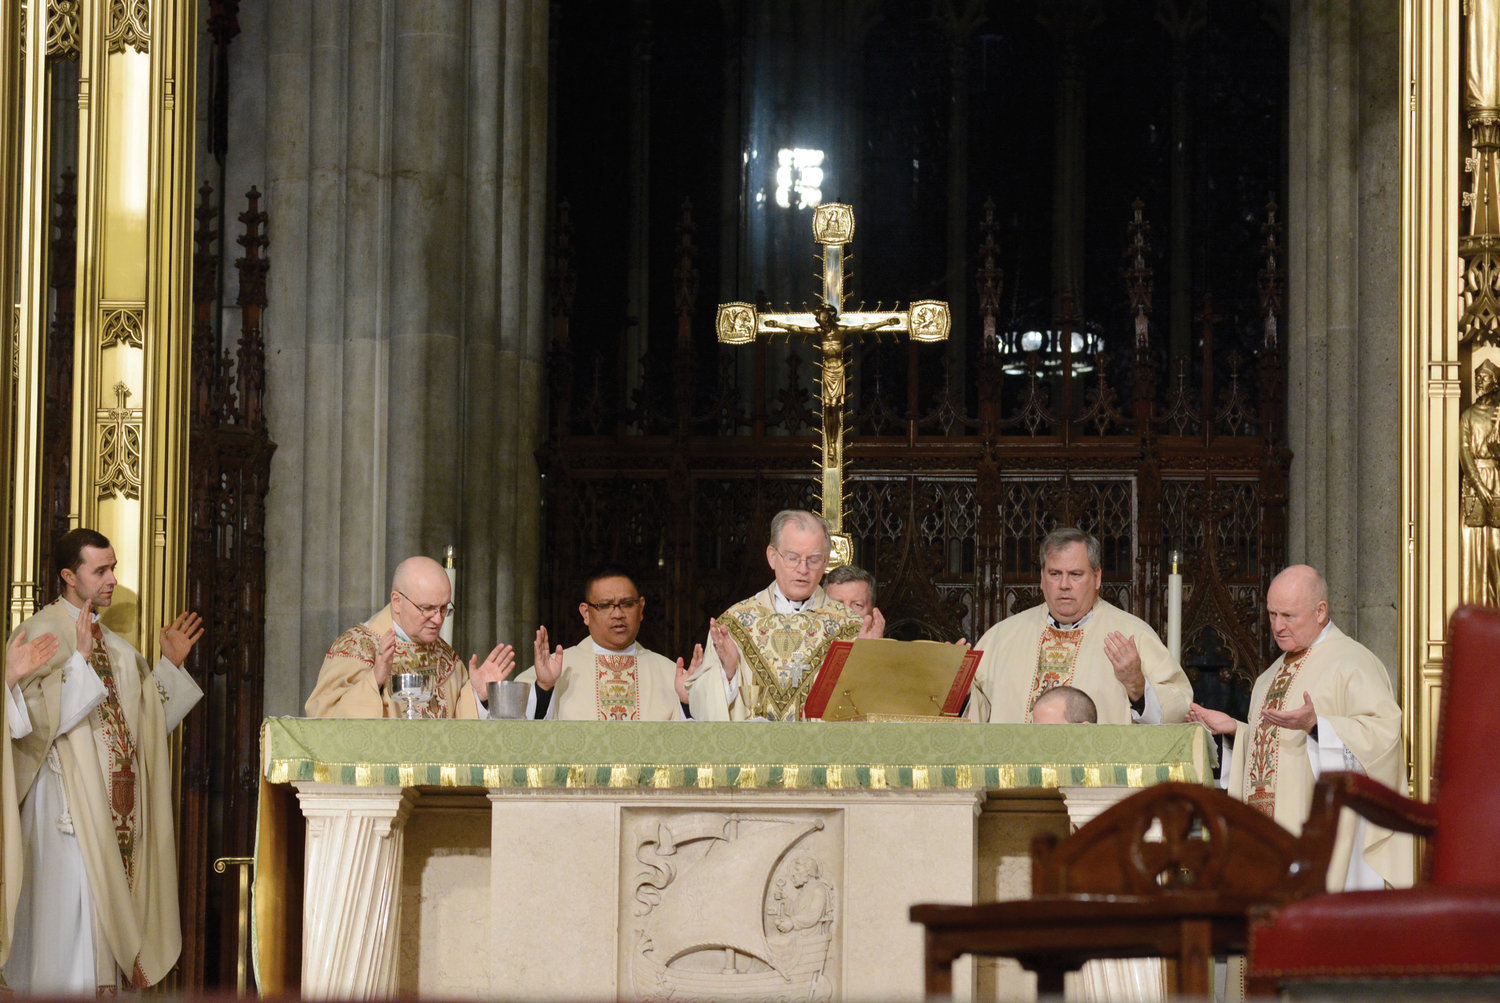 Auxiliary Bishop Peter Byrne offers an evening Mass at St. Patrick's Cathedral Jan. 22. A Holy Hour preceded the liturgy, part of the Prayer Vigil for Life sponsored by the archdiocesan Respect Life Office.